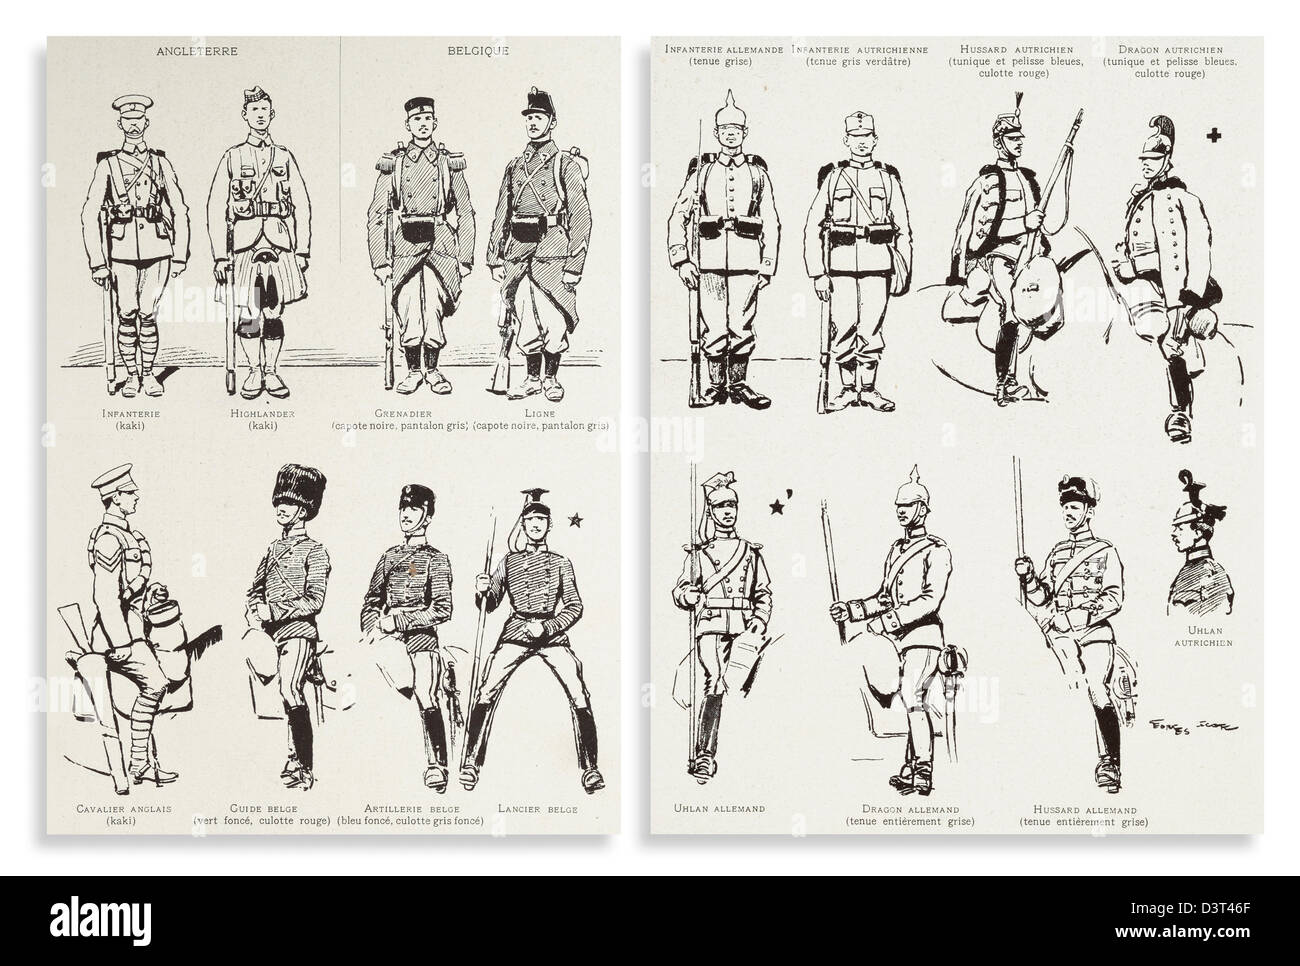 Identification leaflets, showing uniforms worn by the allies and enemy, distributed to French troops during the - Stock Image